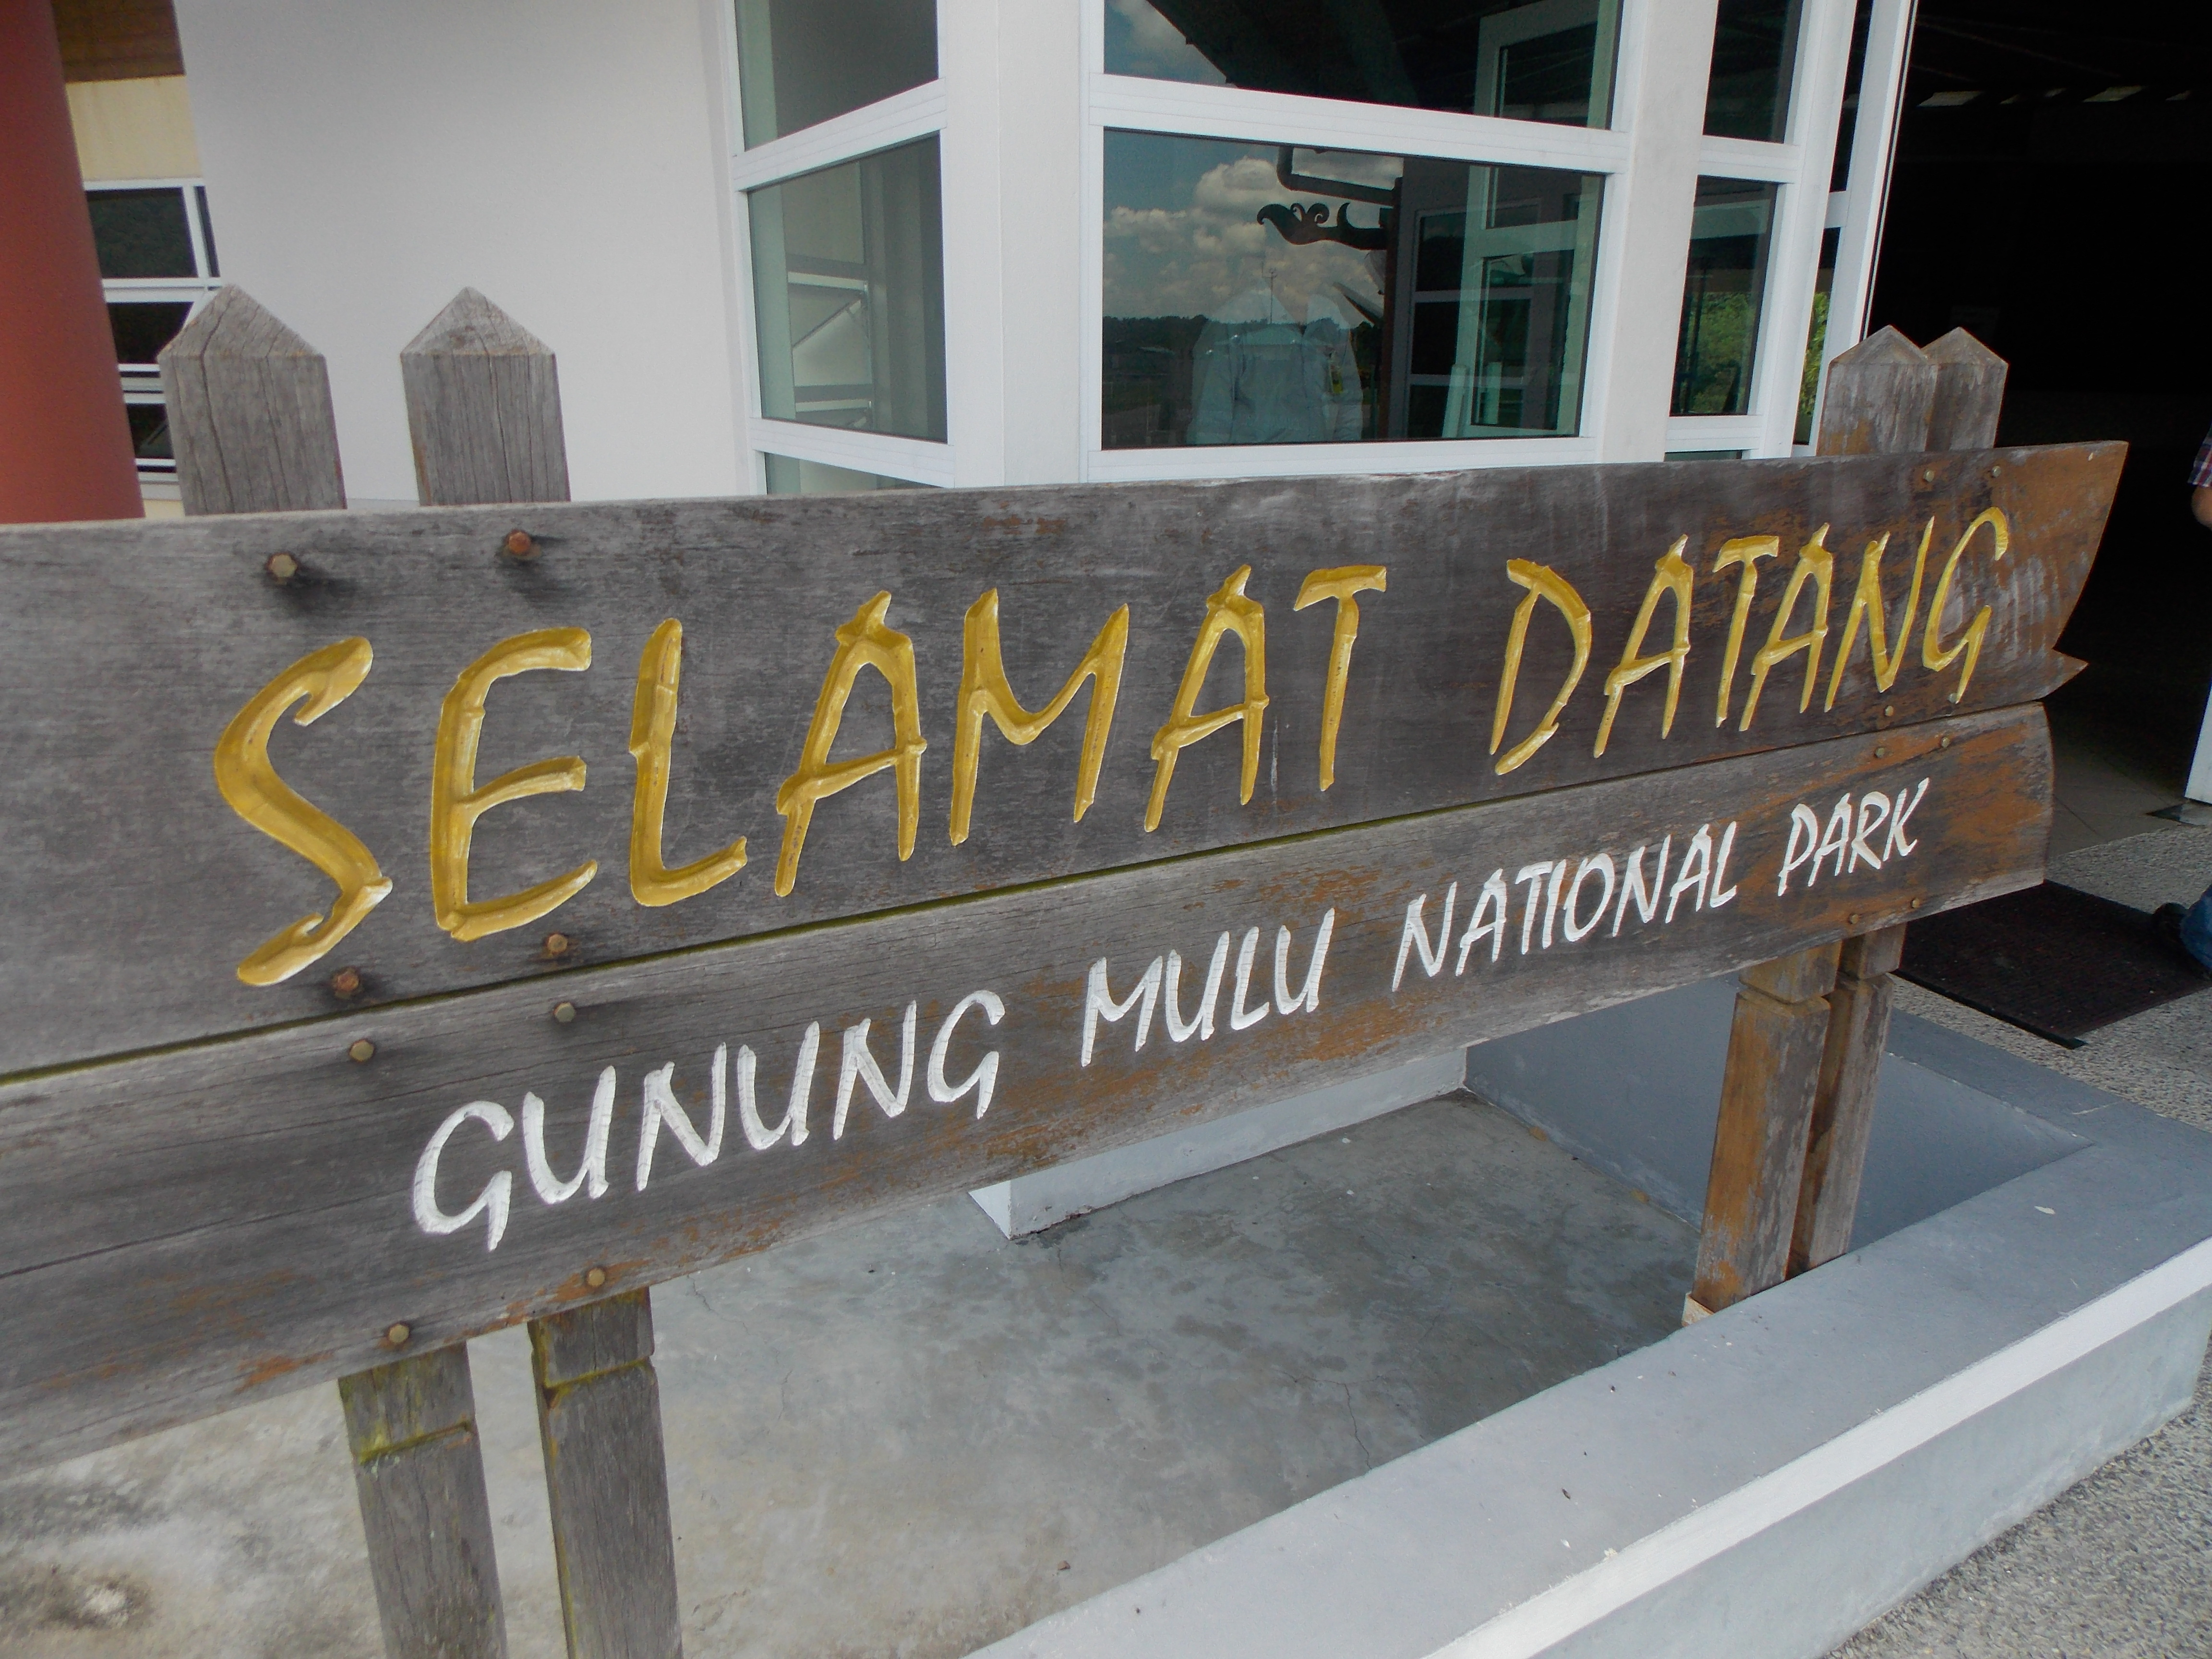 007-welcome-to-mulu-national-park